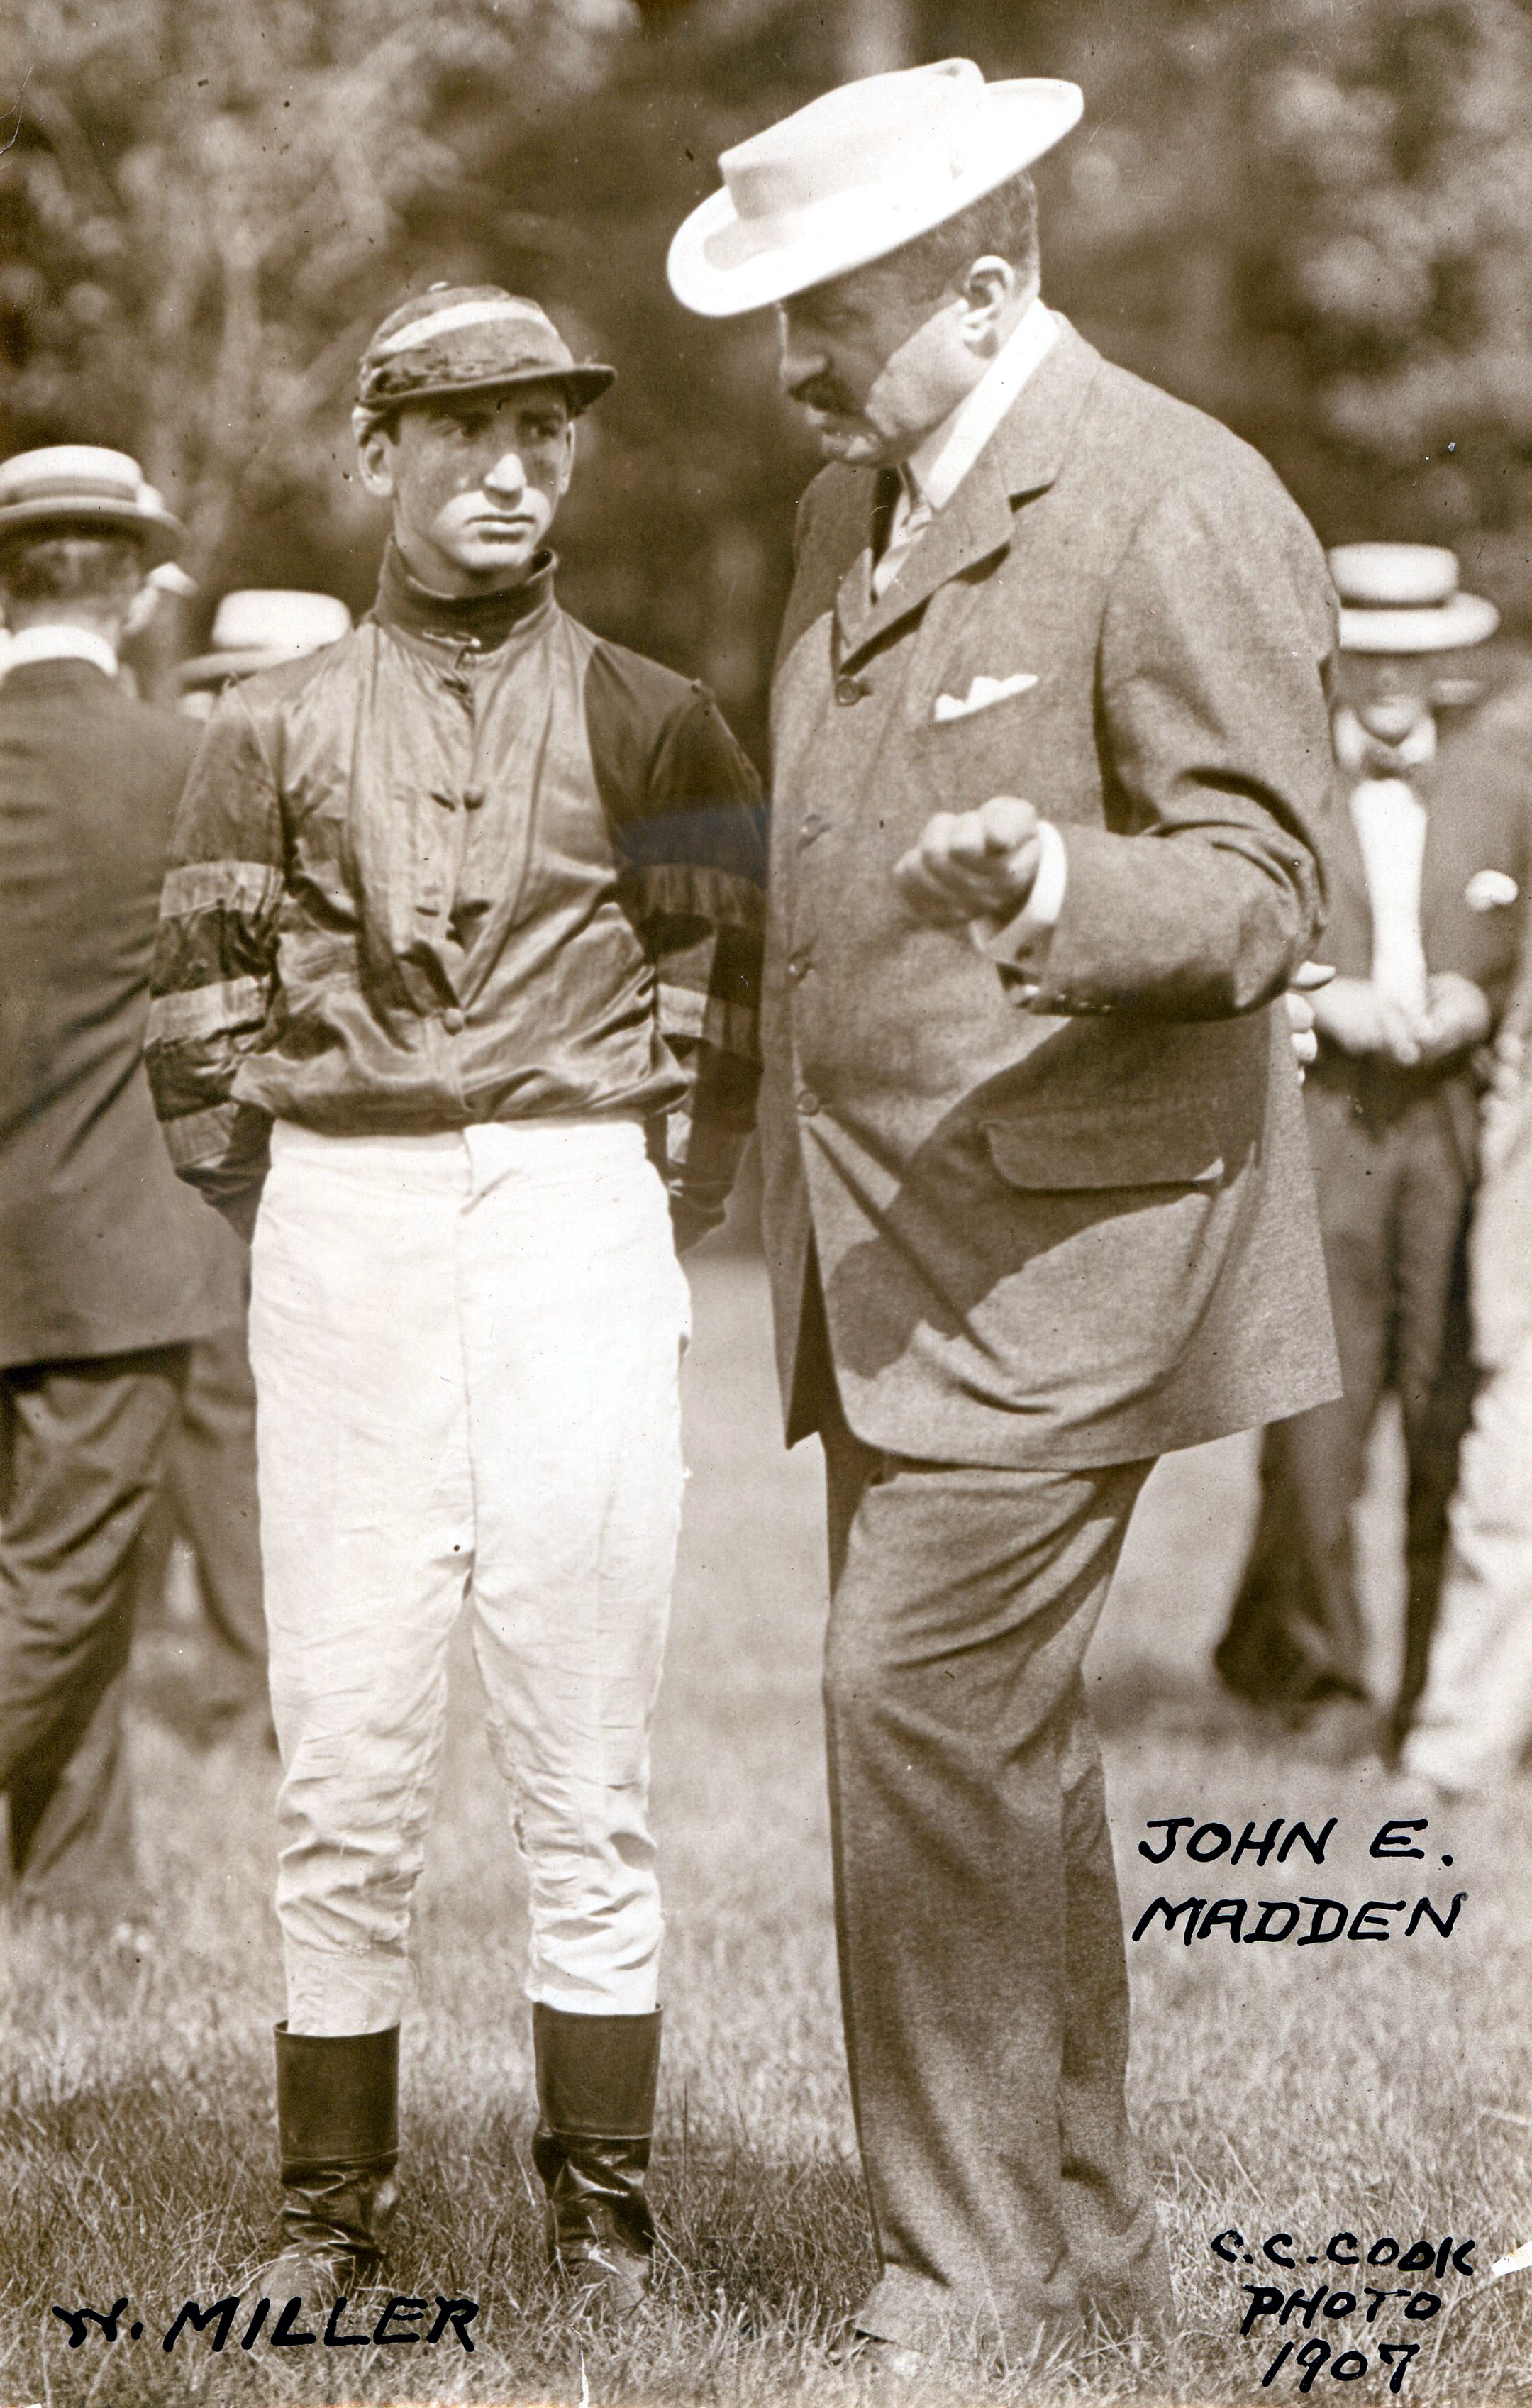 Walter Miller with trainer John E. Madden in 1907 (C. C. Cook/Museum Collection)